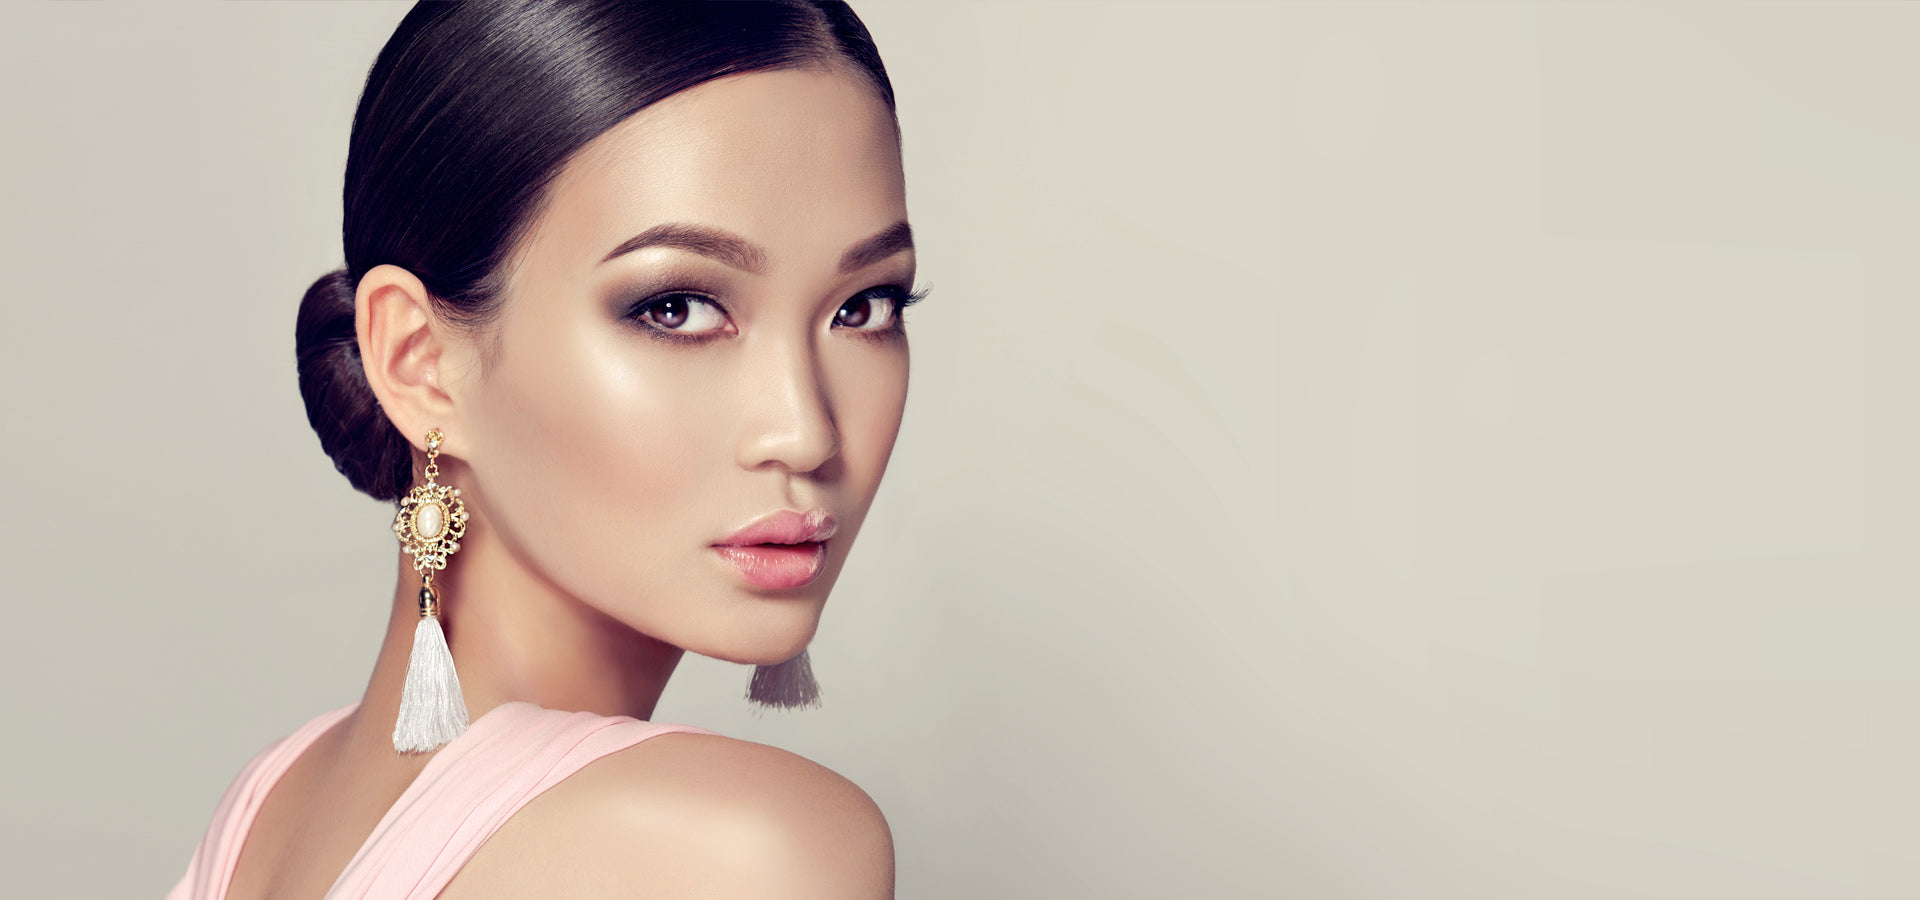 We are Number One for makeup training in Australia! With 3 locations ( Melbourne, Sydney & Brisbane), CONTACT US TODAY for information to enroll in our ...